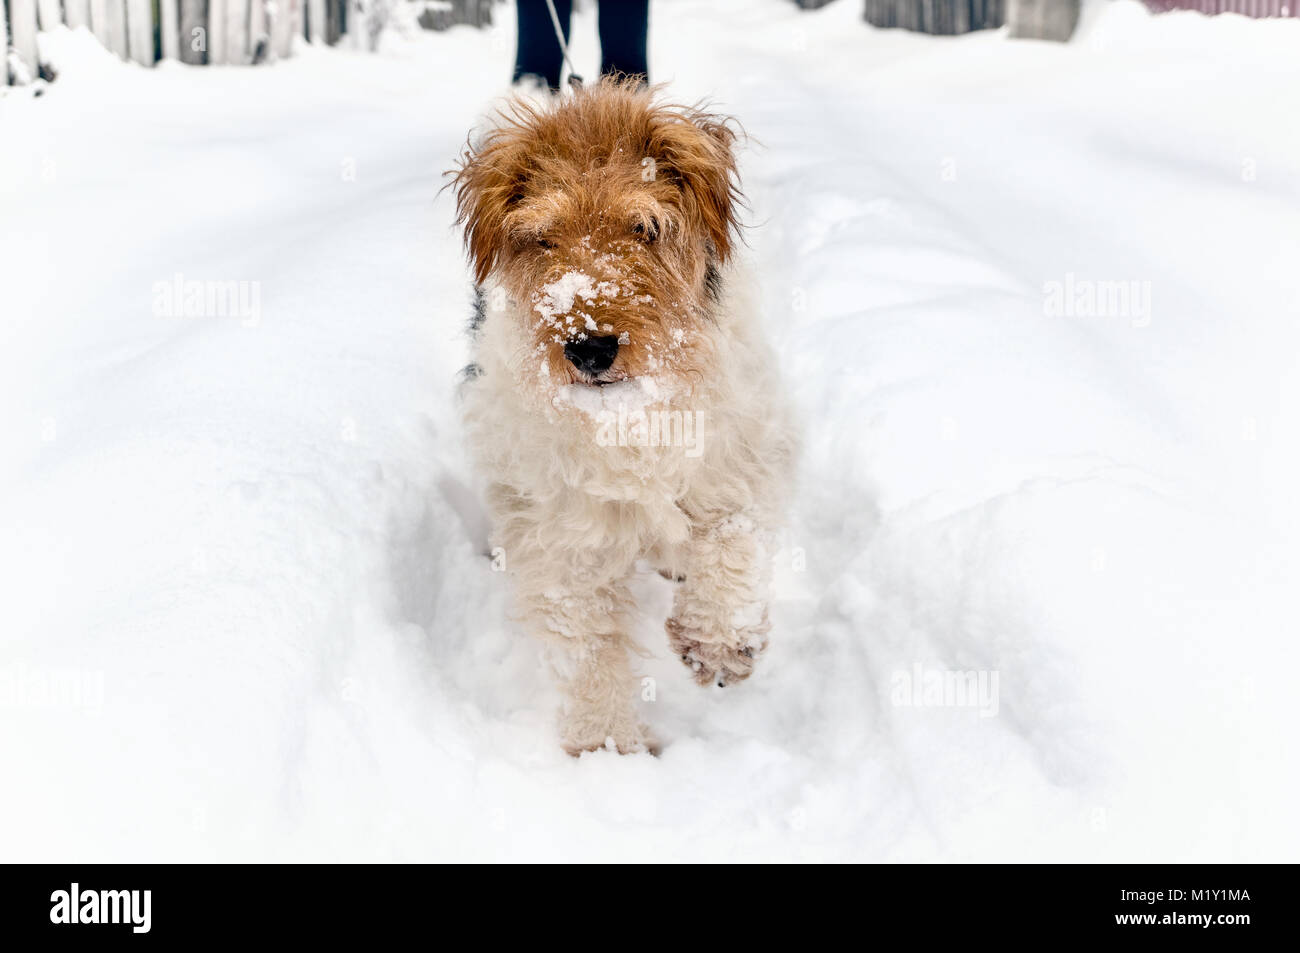 Sad dog sneaks in a snow drift in search of the road. Anomalous snowfall in the winter. - Stock Image